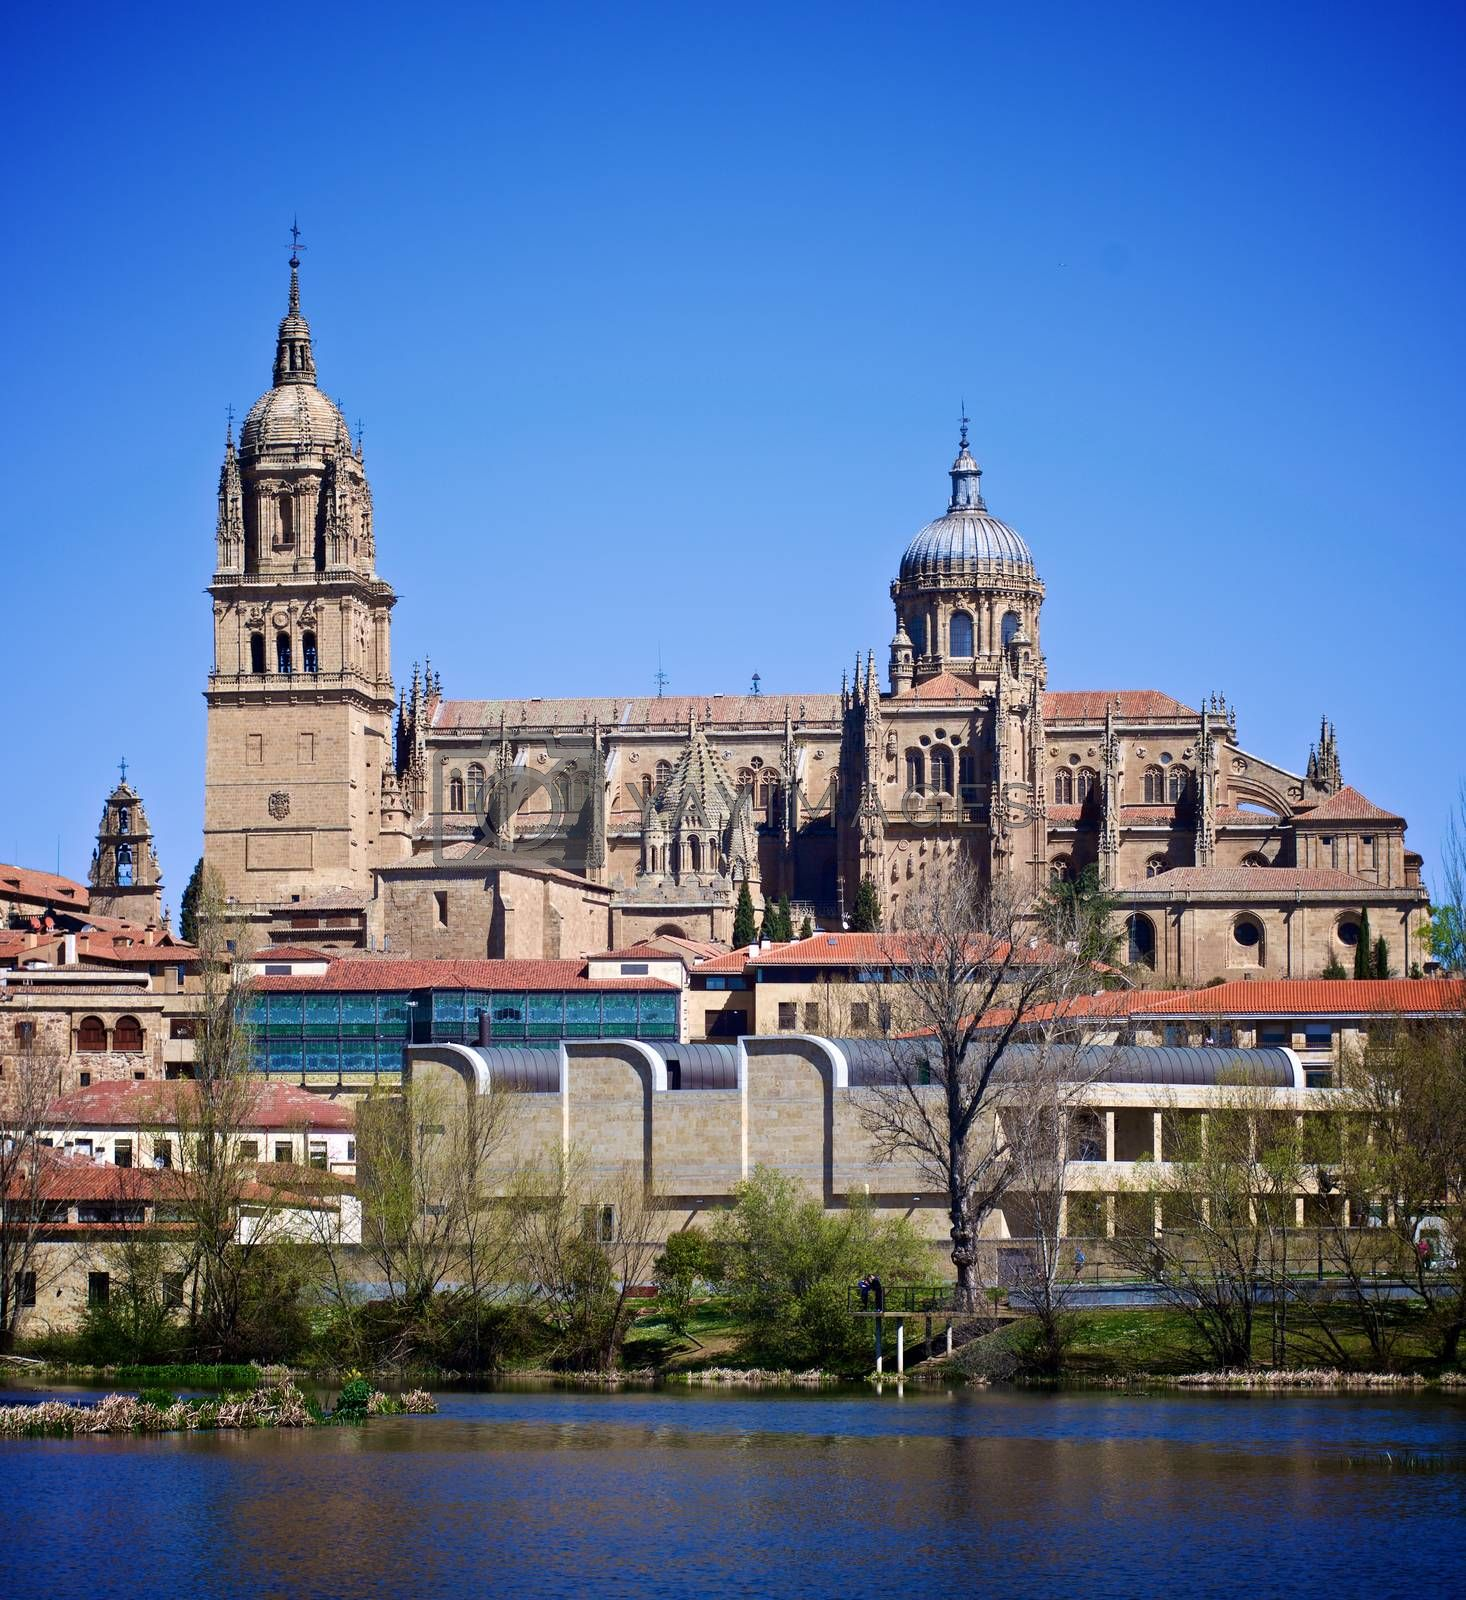 New Cathedral In Salamanca against Blue Sky Outdoors. Castile and Leon, Spain